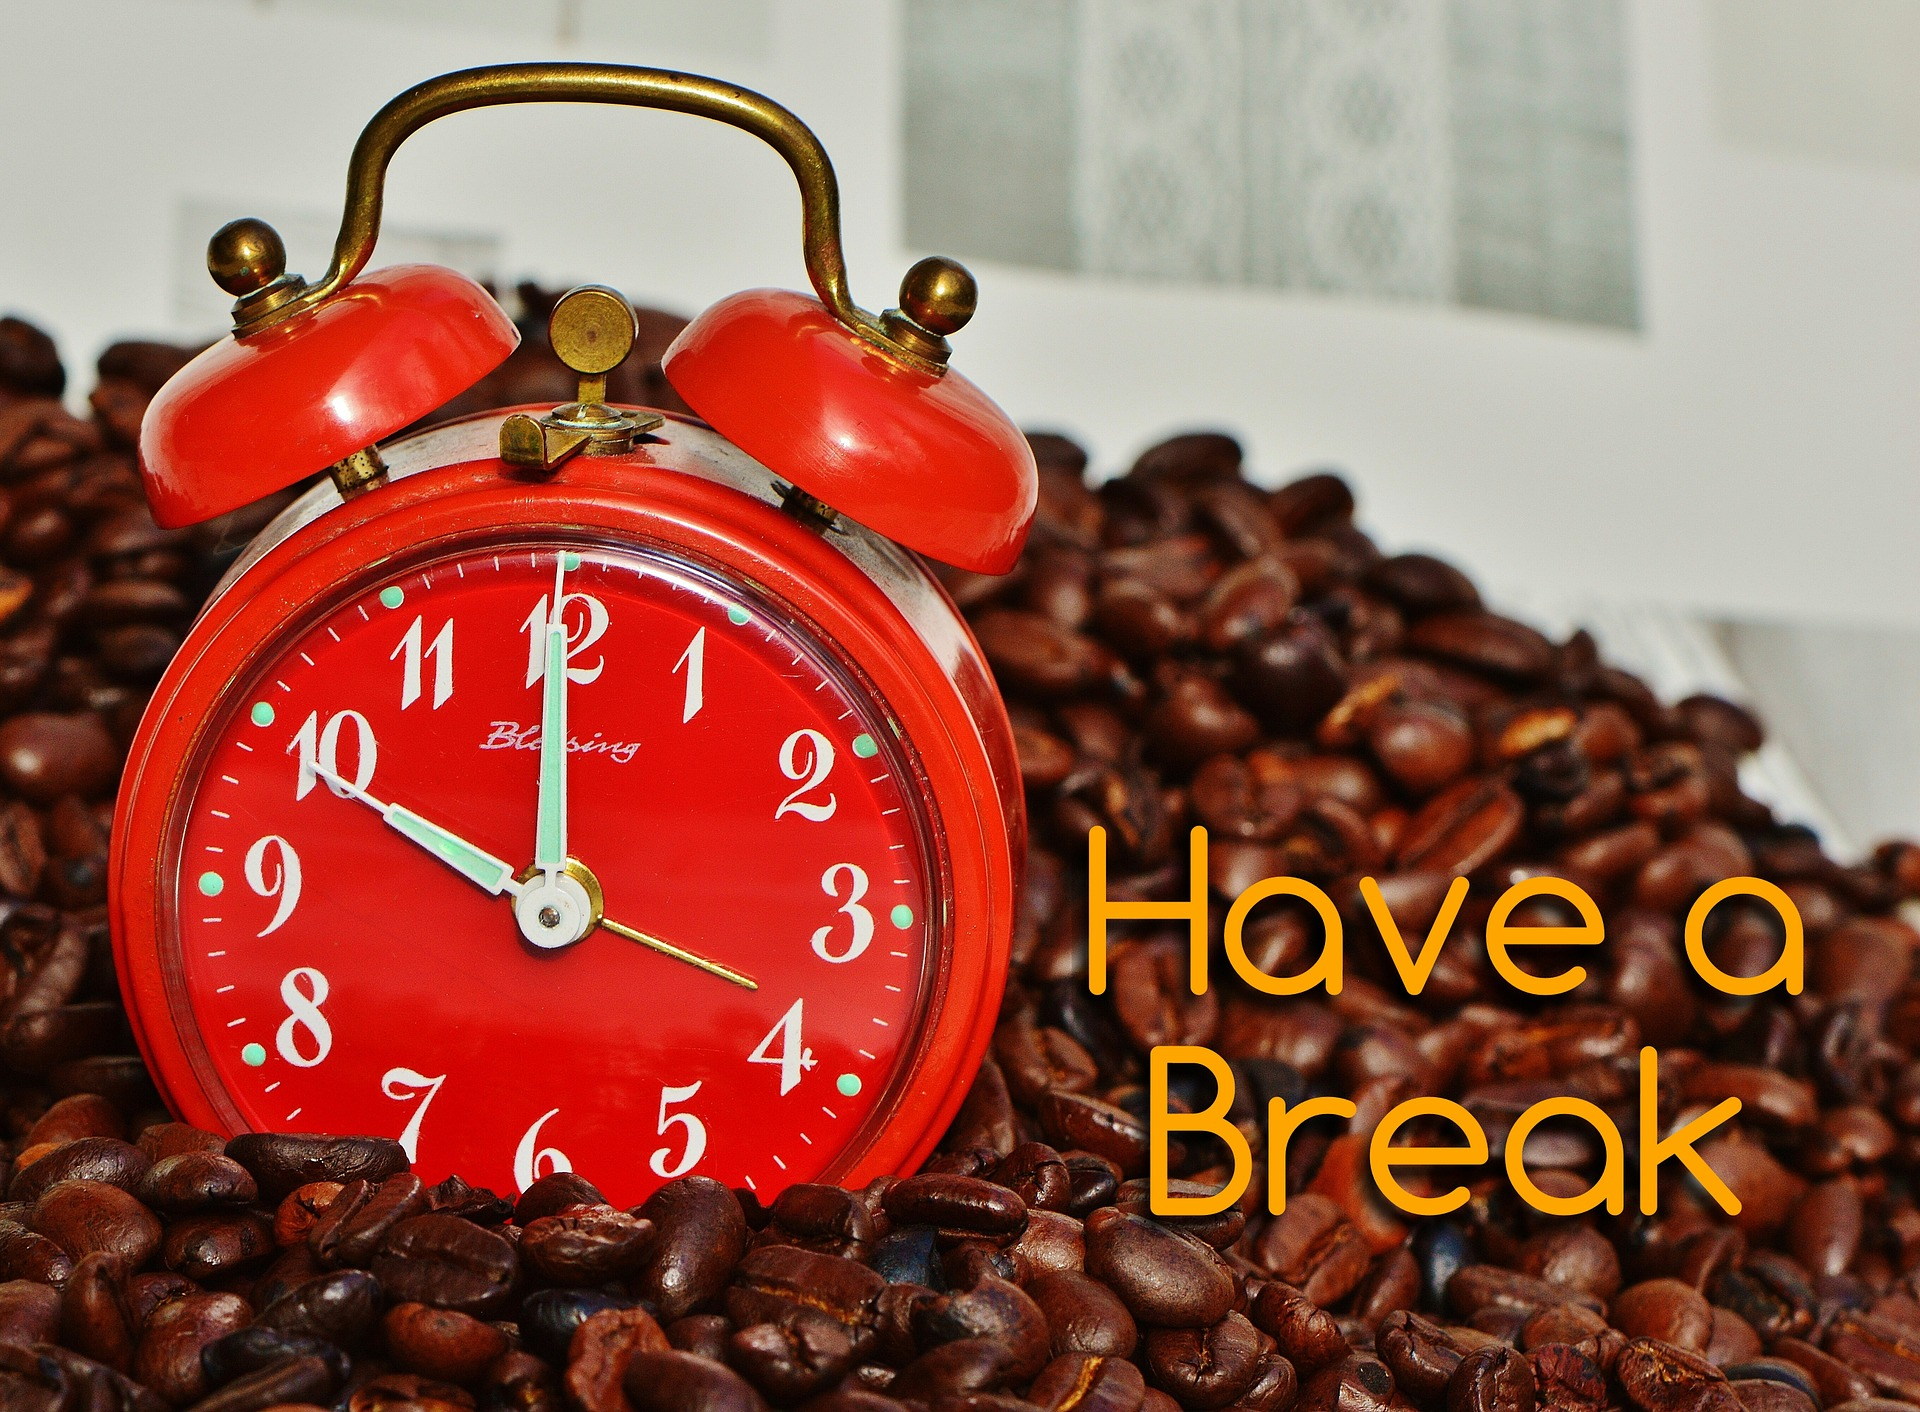 Image of coffee beans, a clock, and the words Have a Break